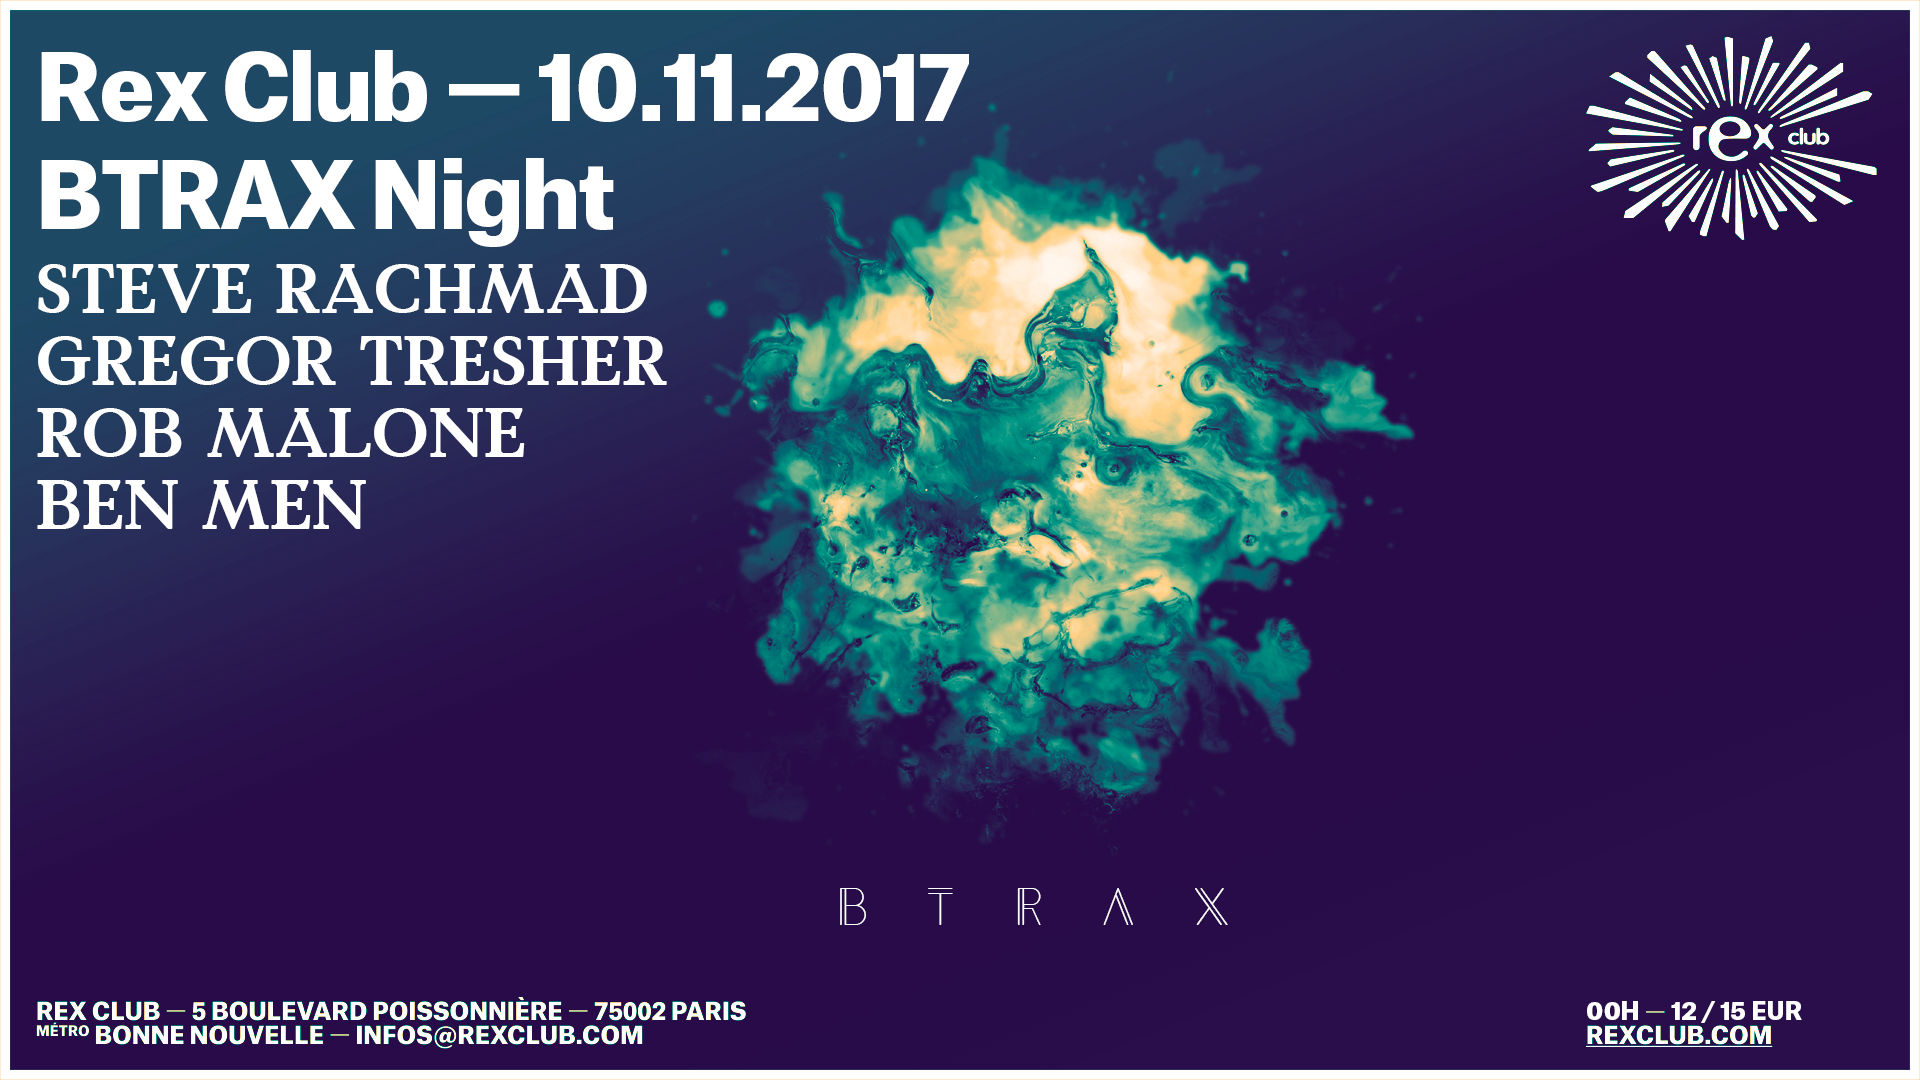 20171110-BTRAX-Night-rex-club-facebook_event_banner_1920x1080